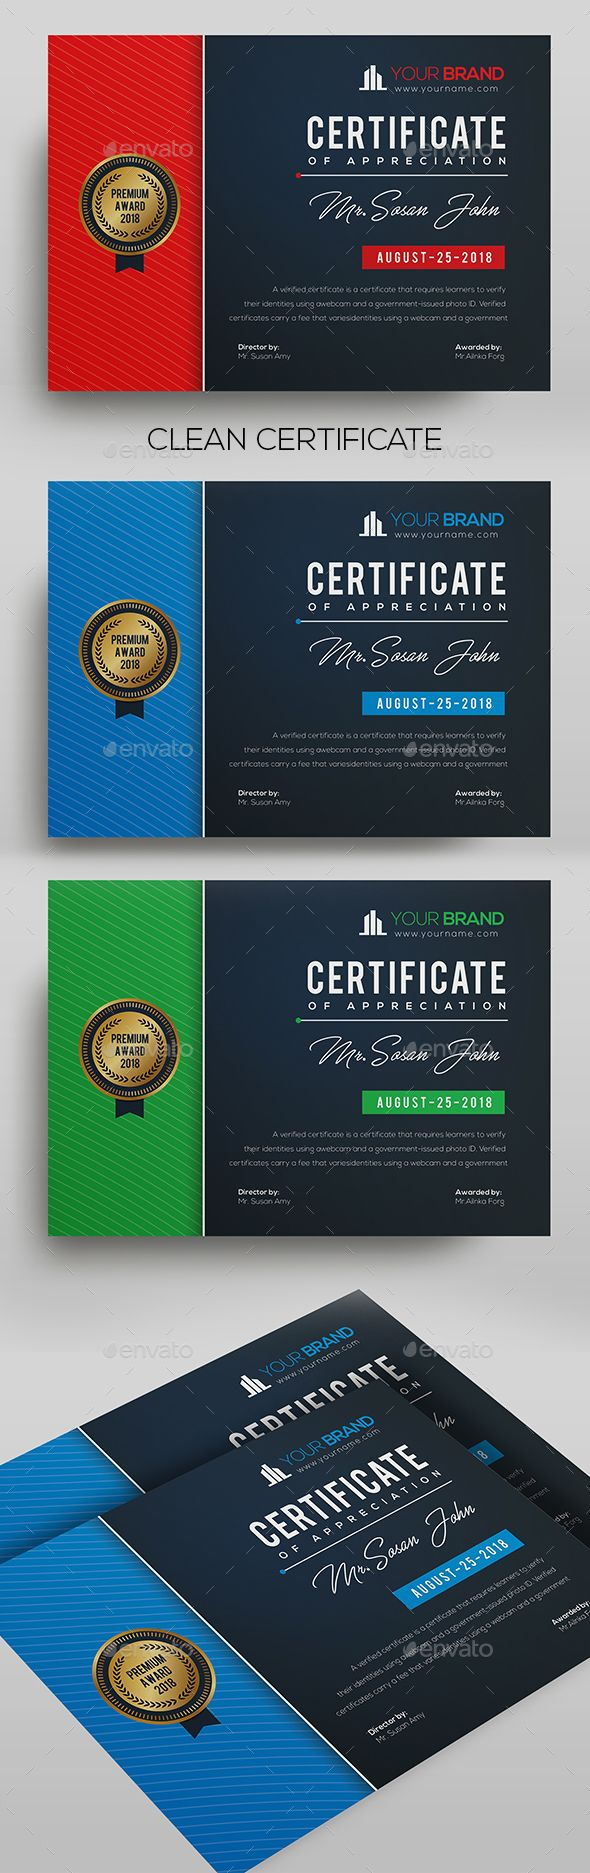 Certificate certificate certificate design and template certificate certificate template fully clean certificate a4 paper size with bleeds quick and easy to customize yadclub Gallery